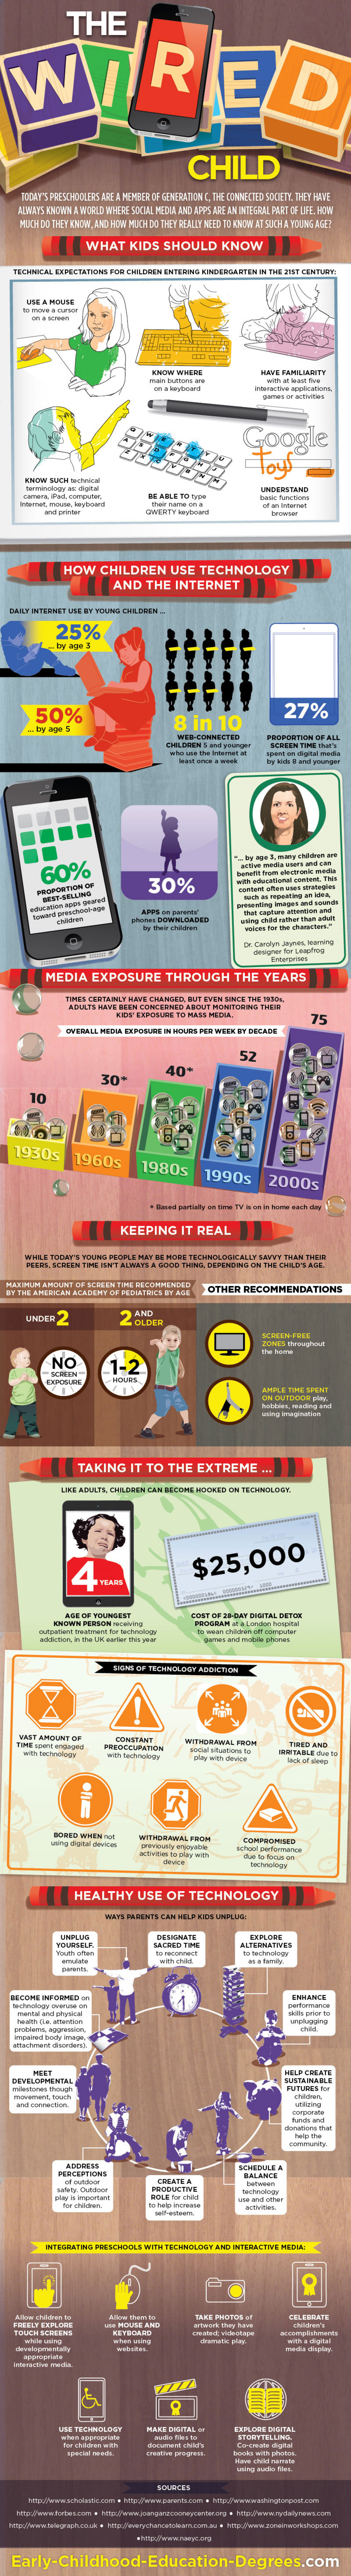 The Wired Child Infographic